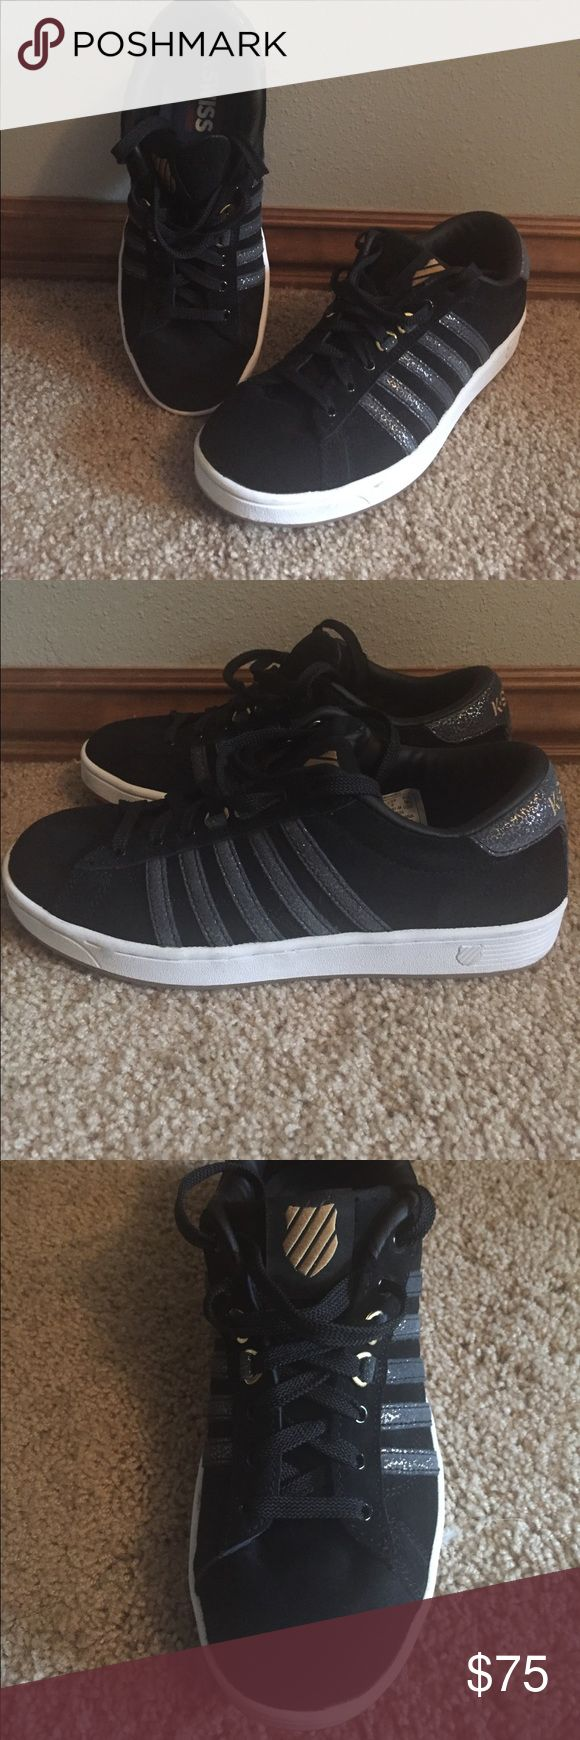 NEW Women's K Swiss Shoes Only worn once! Very comfortable shoe with unique accented design! Willing to consider any offers! K-Swiss Shoes Sneakers